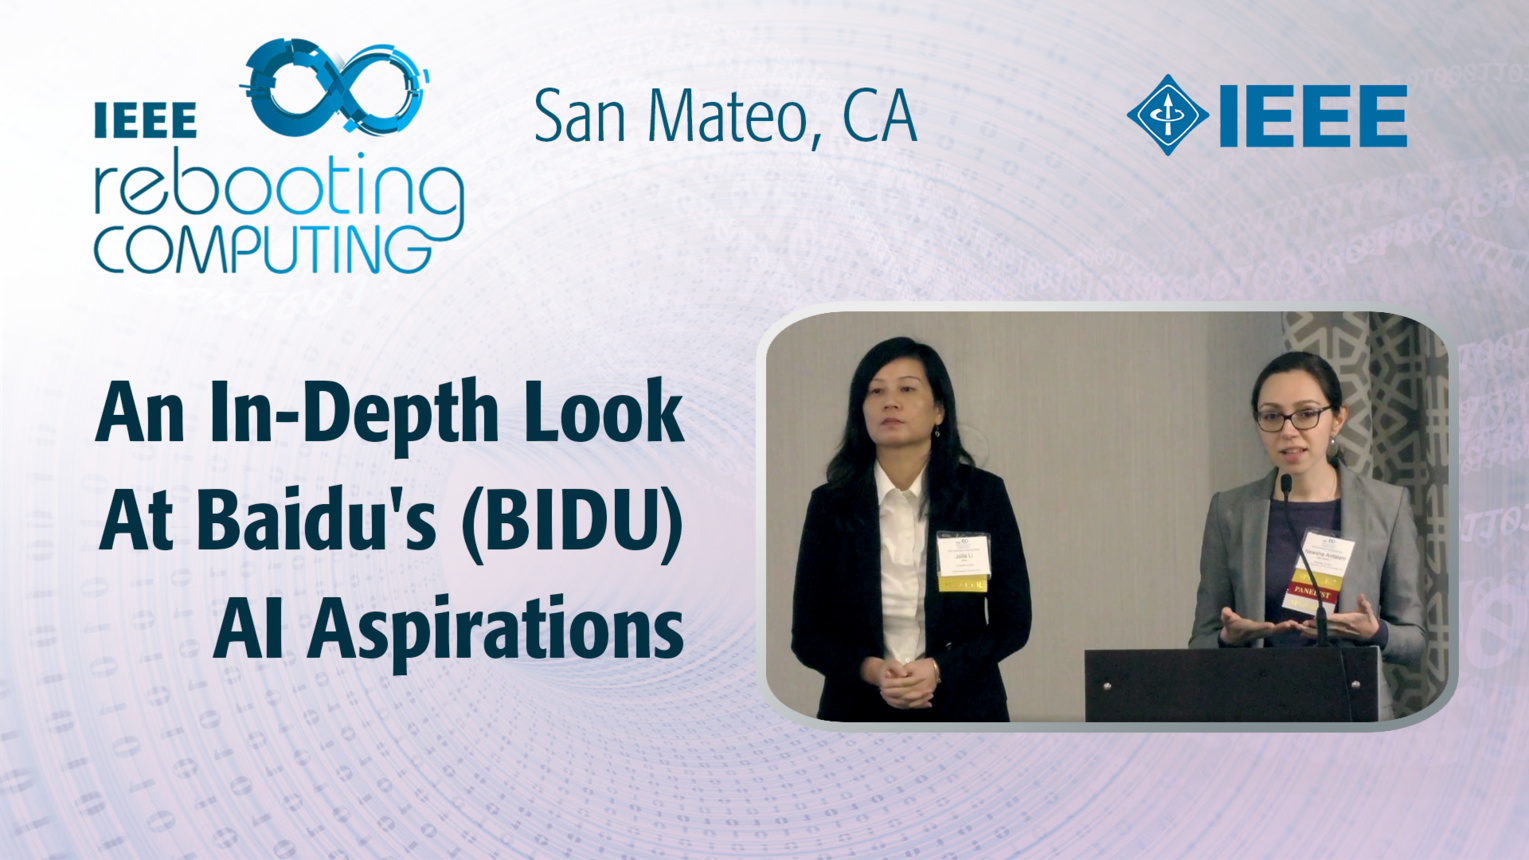 An In-Depth Look At Baidu's (BIDU) Artificial Intelligence Aspirations - ICRC San Mateo, 2019